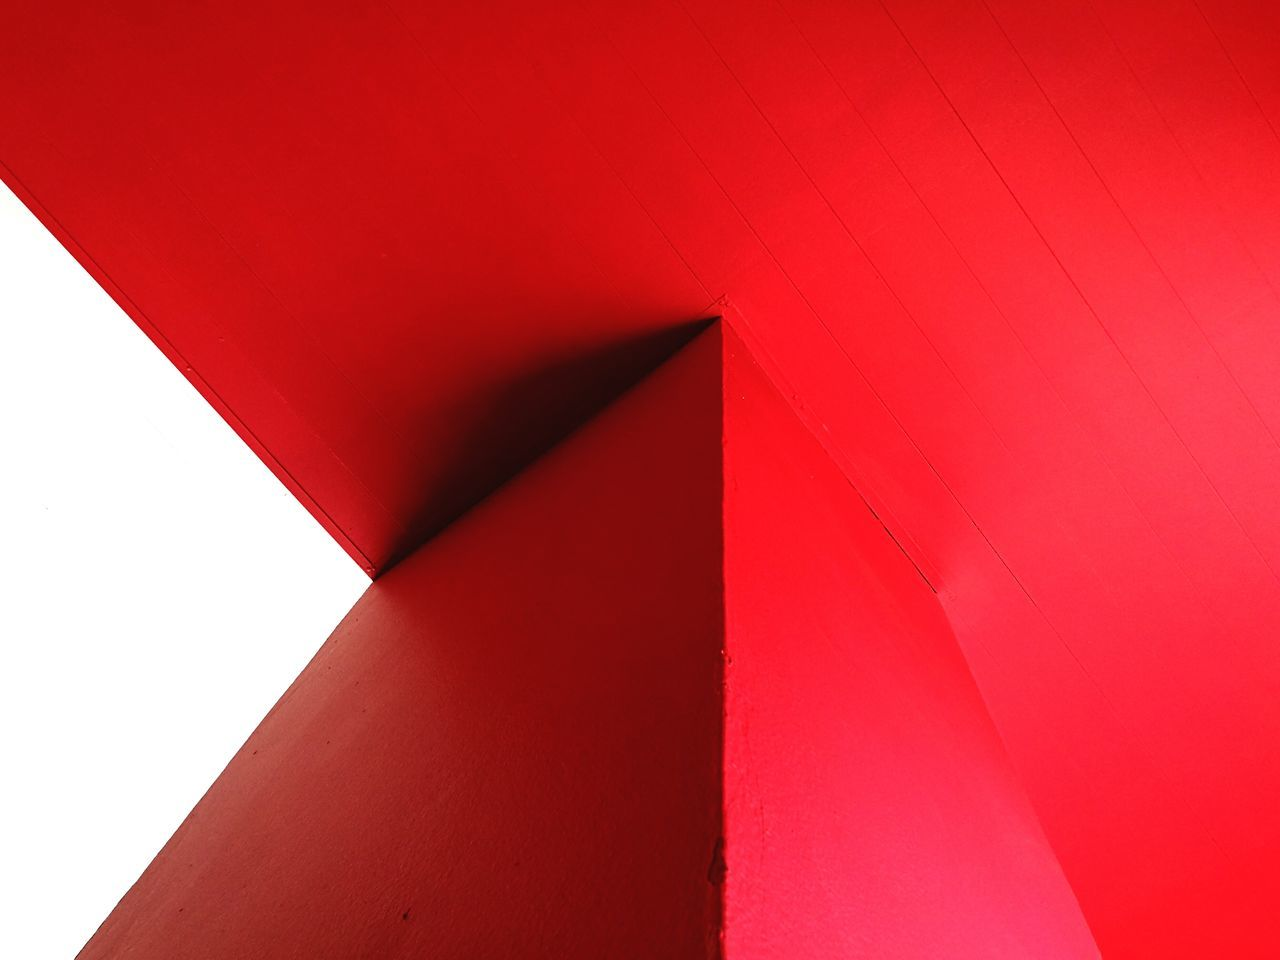 Exploring Style Red Envelope No People Detail Details Textures And Shapes Shape Form LINE Space Architectural Minimal